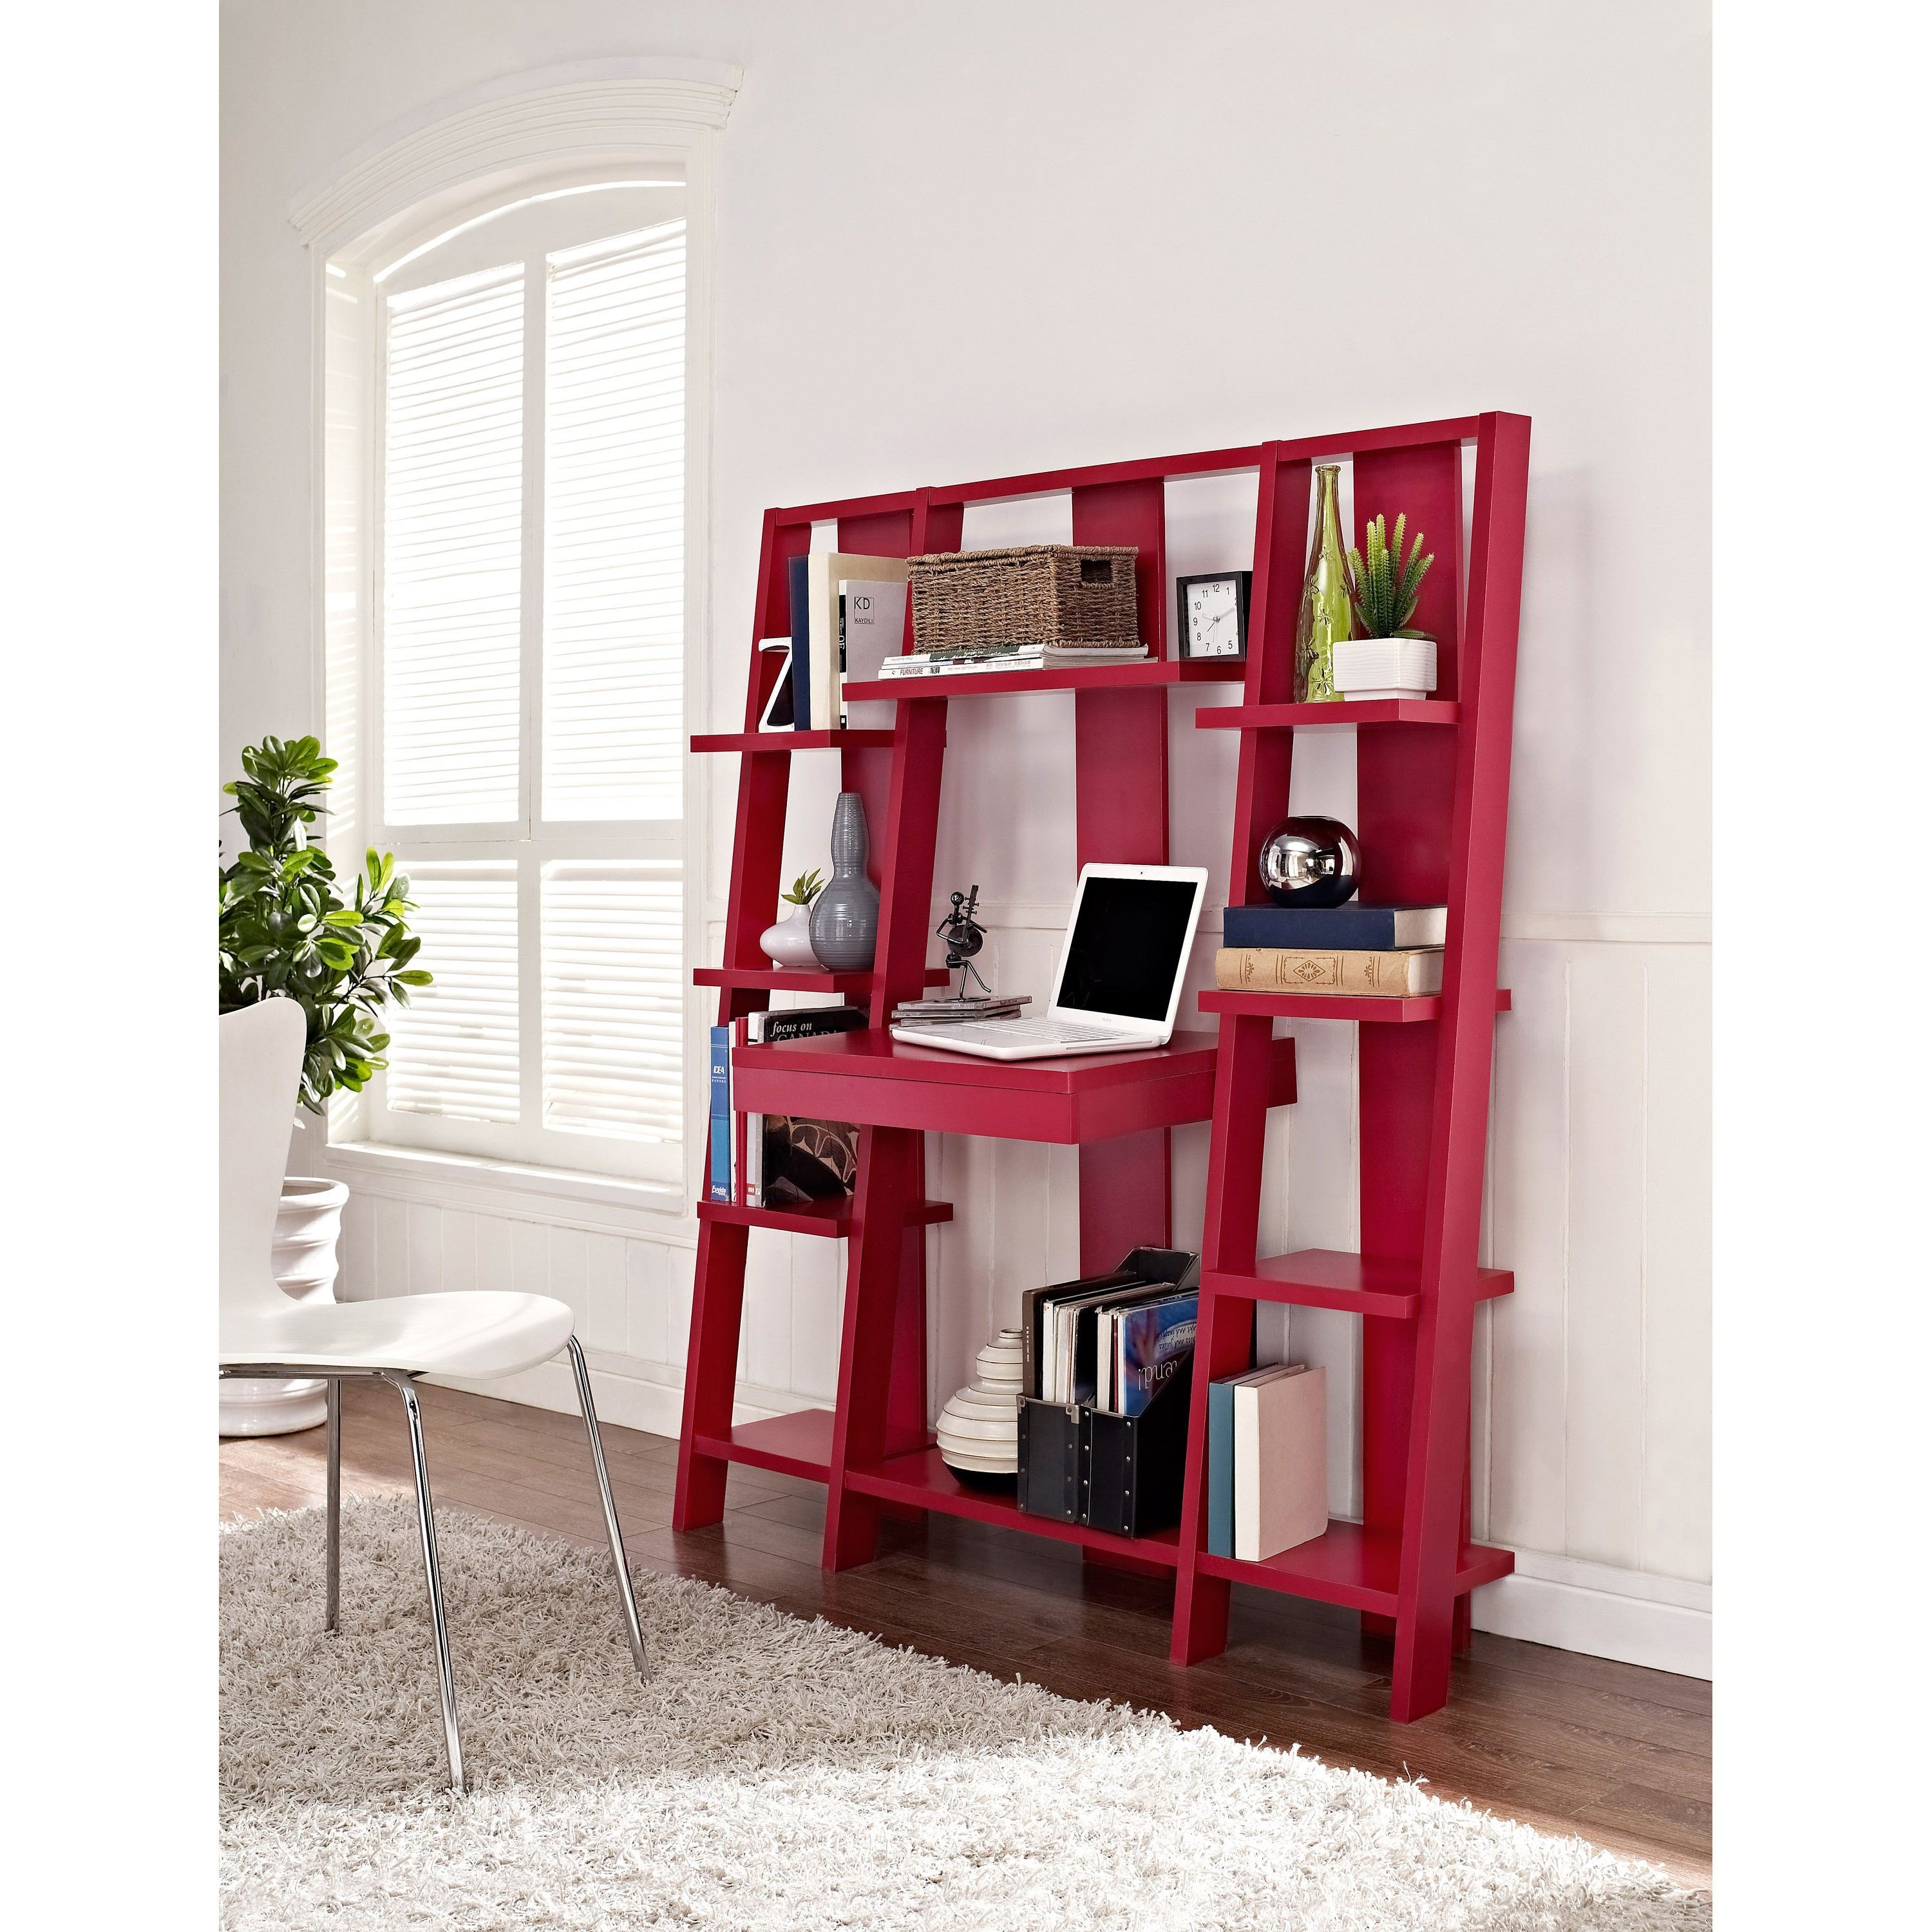 Ameriwood home altra ladder bookcase desk red black products